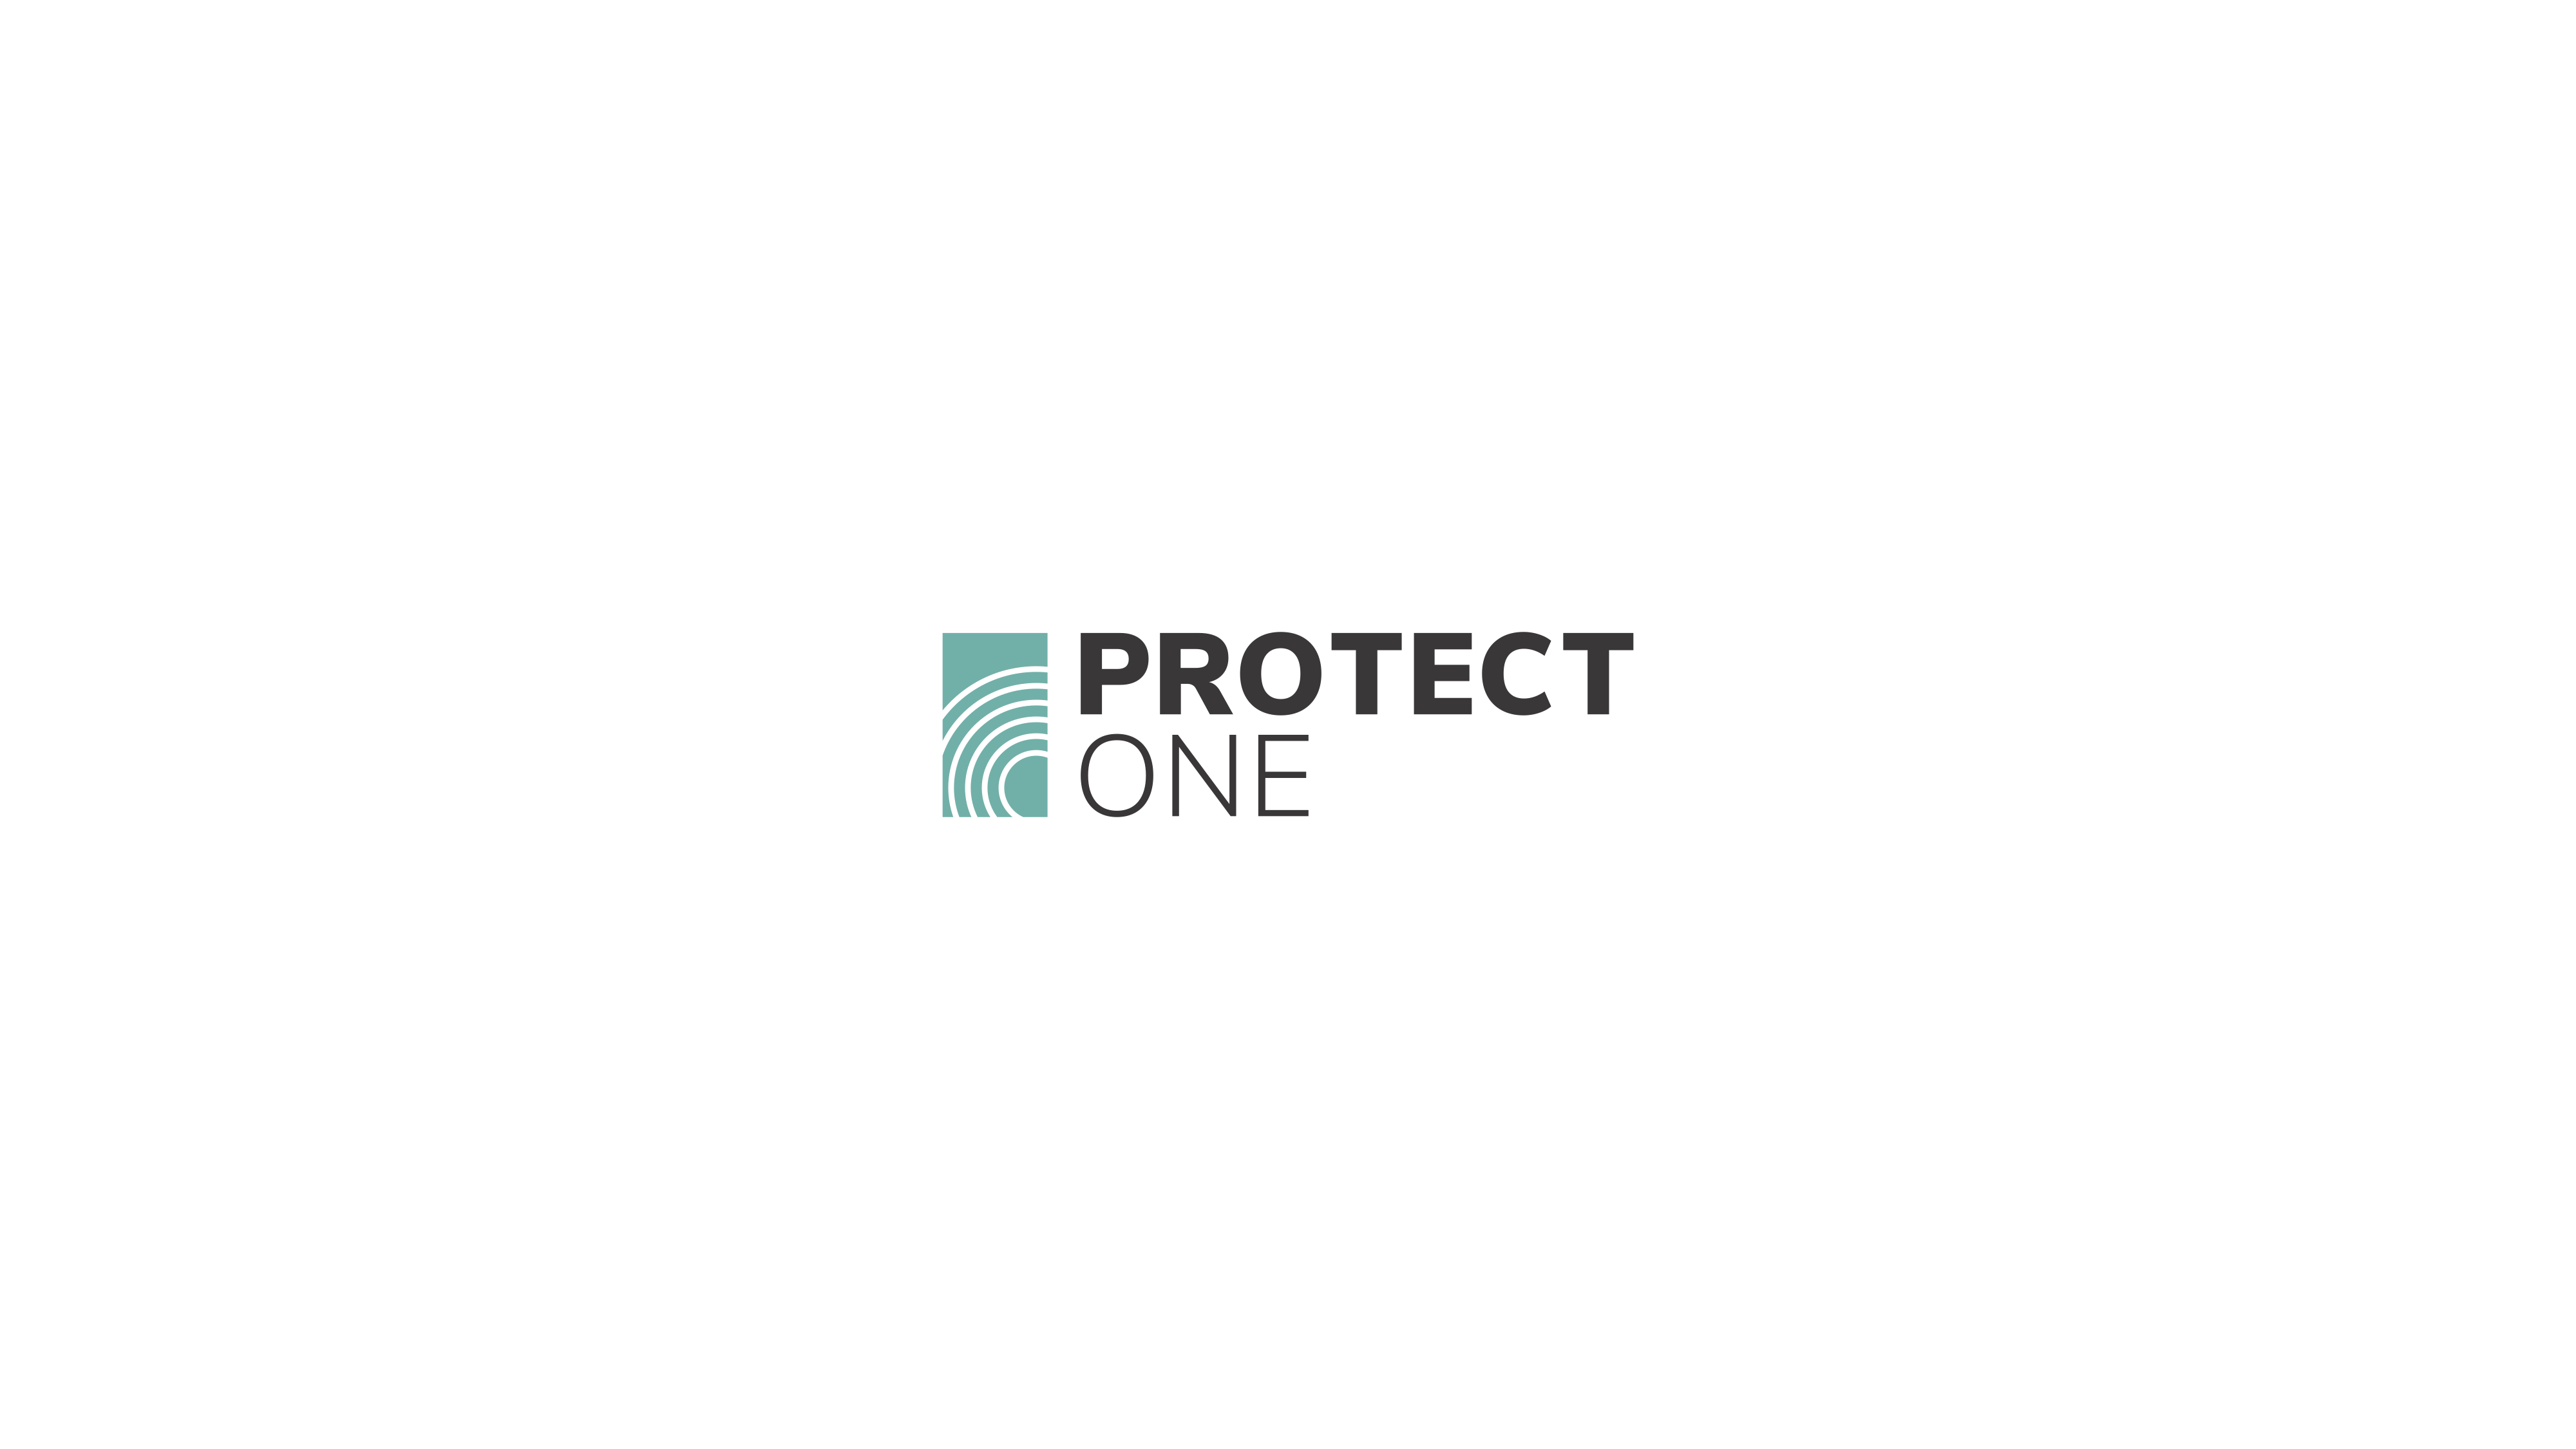 The ProtectONE website took off!